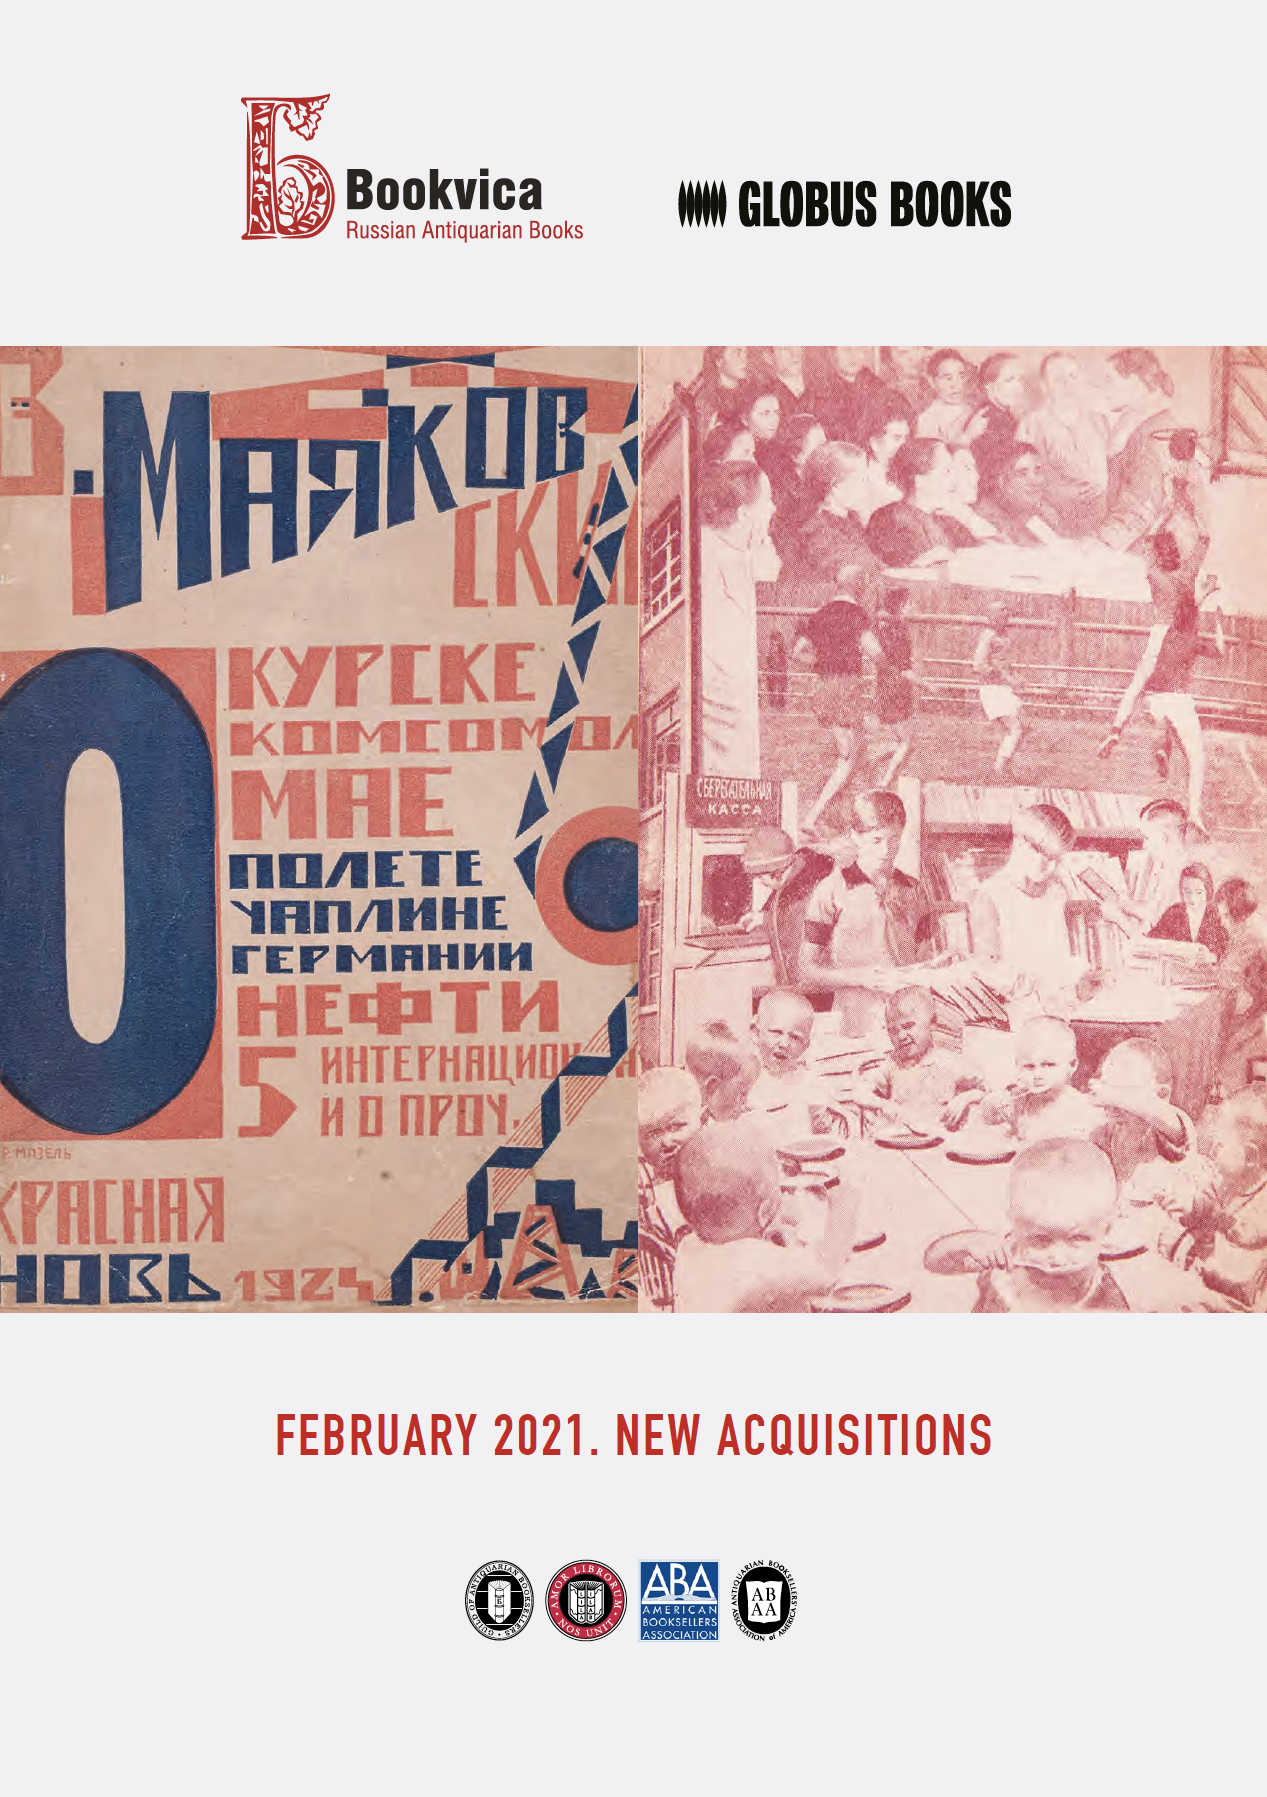 February 2021. New Acquisitions